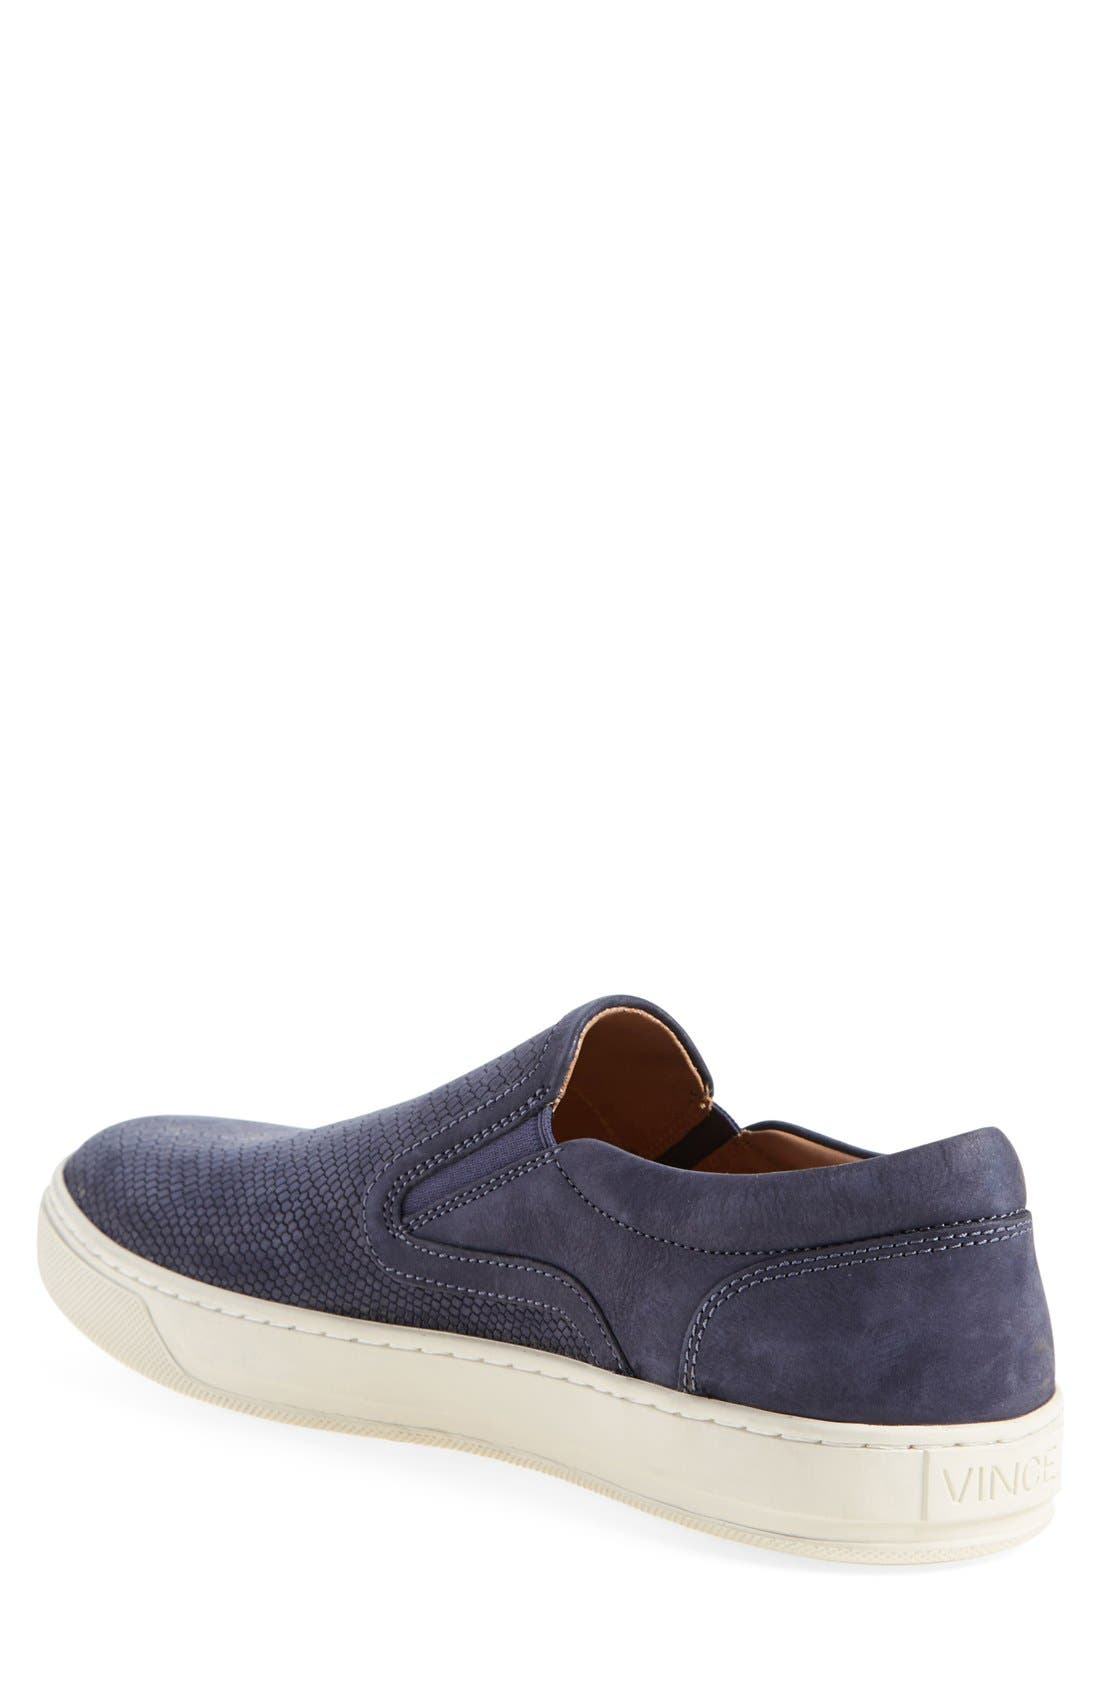 'Ace' Slip-On,                             Alternate thumbnail 2, color,                             Navy Leather